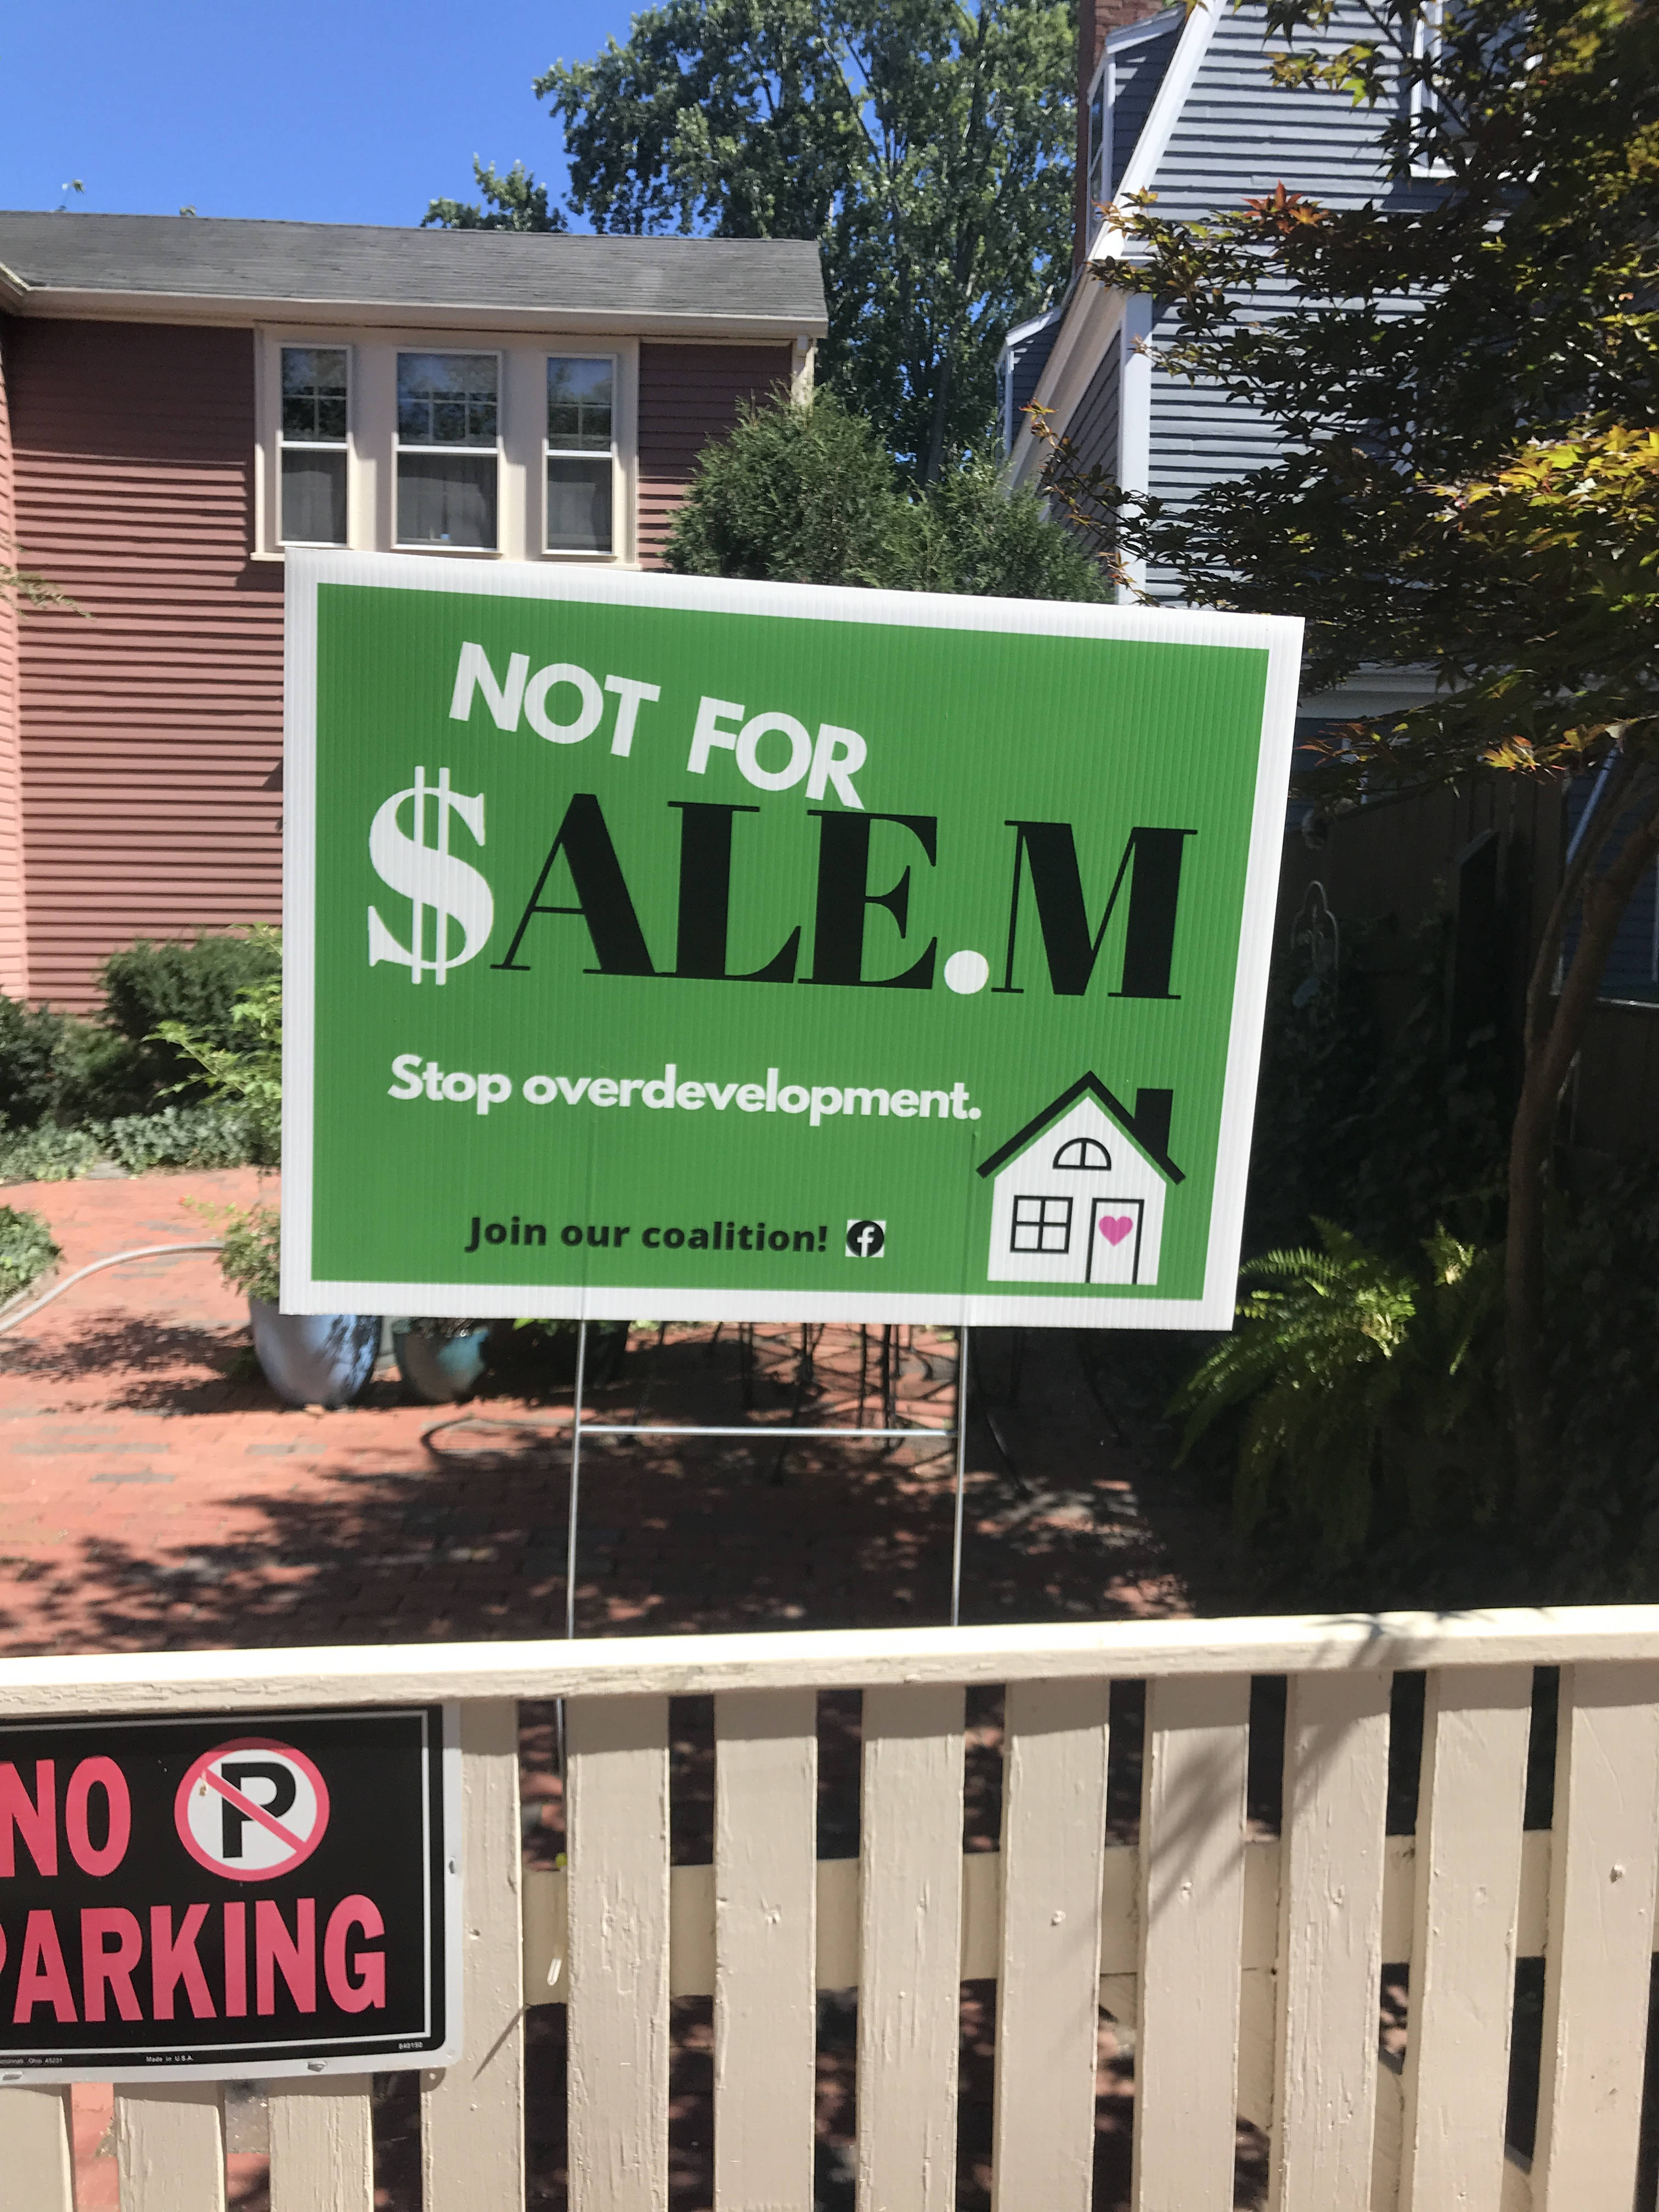 A cream-colored fence in front of an antique home. The fence bears a 'No Parking' sign and one of the 'Not For $alem' signs. The 'Not for $alem' sign says 'Stop Overdevelopment. Join our coalition!' and has a picture of a single-family house on it. The door of the house is decorated with a heart.